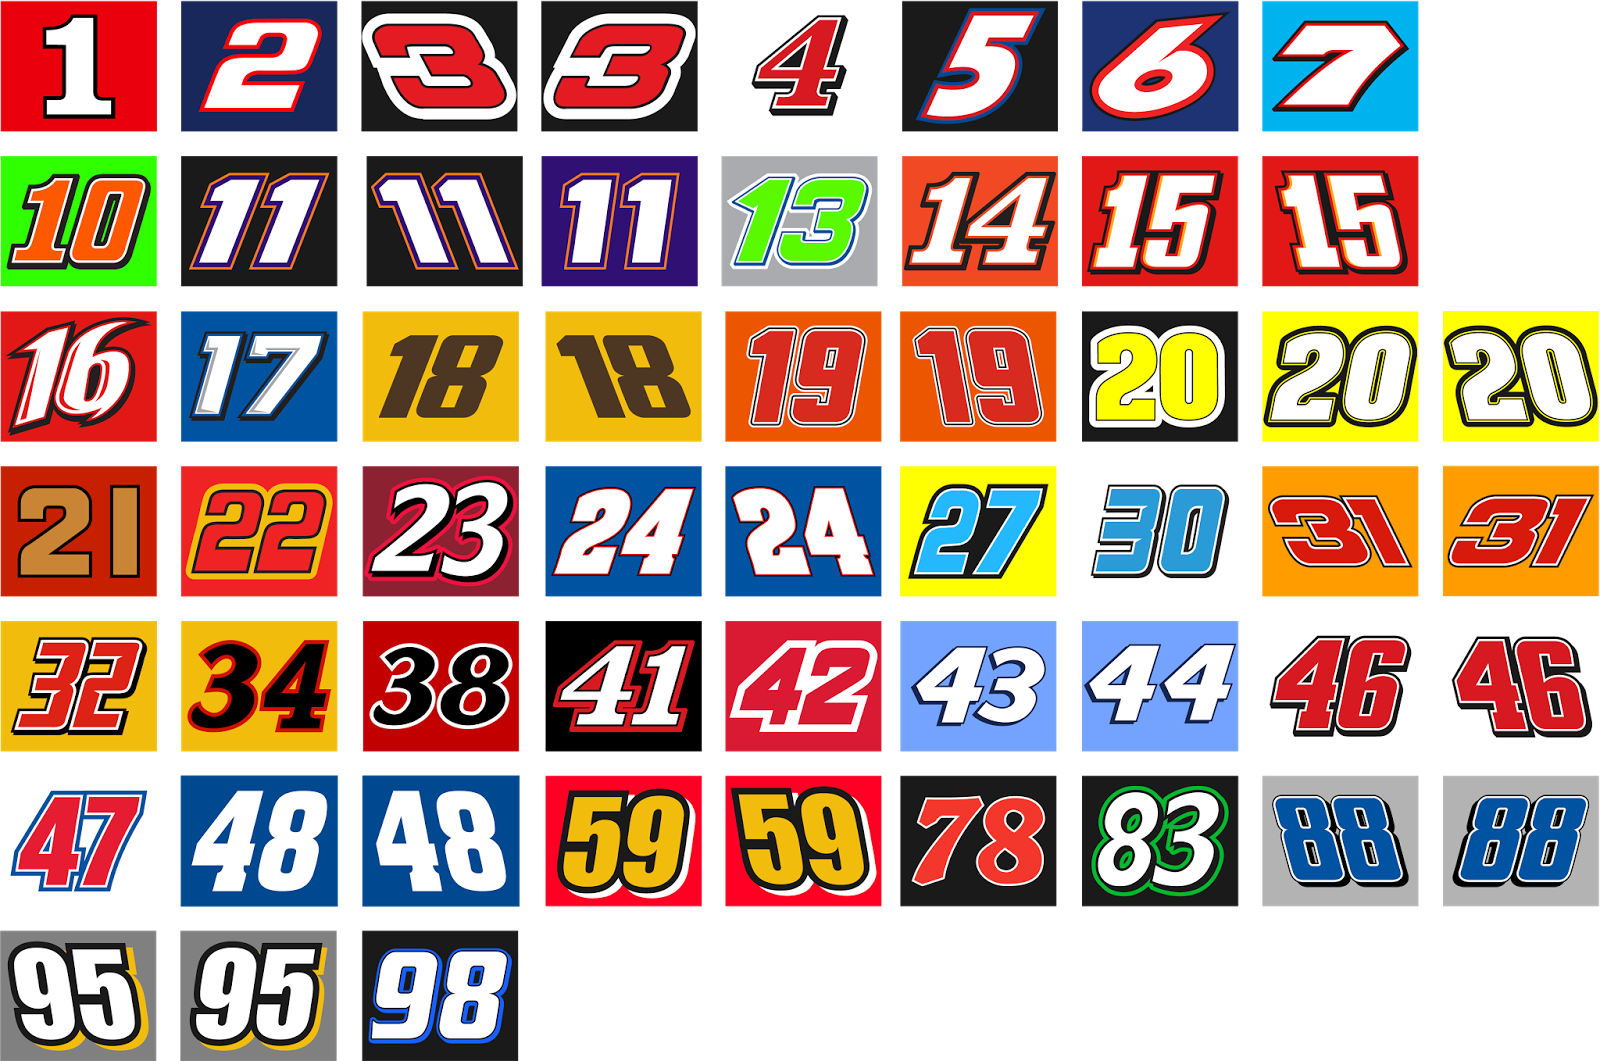 Nascar numbers png. Sprint cup concepts chris